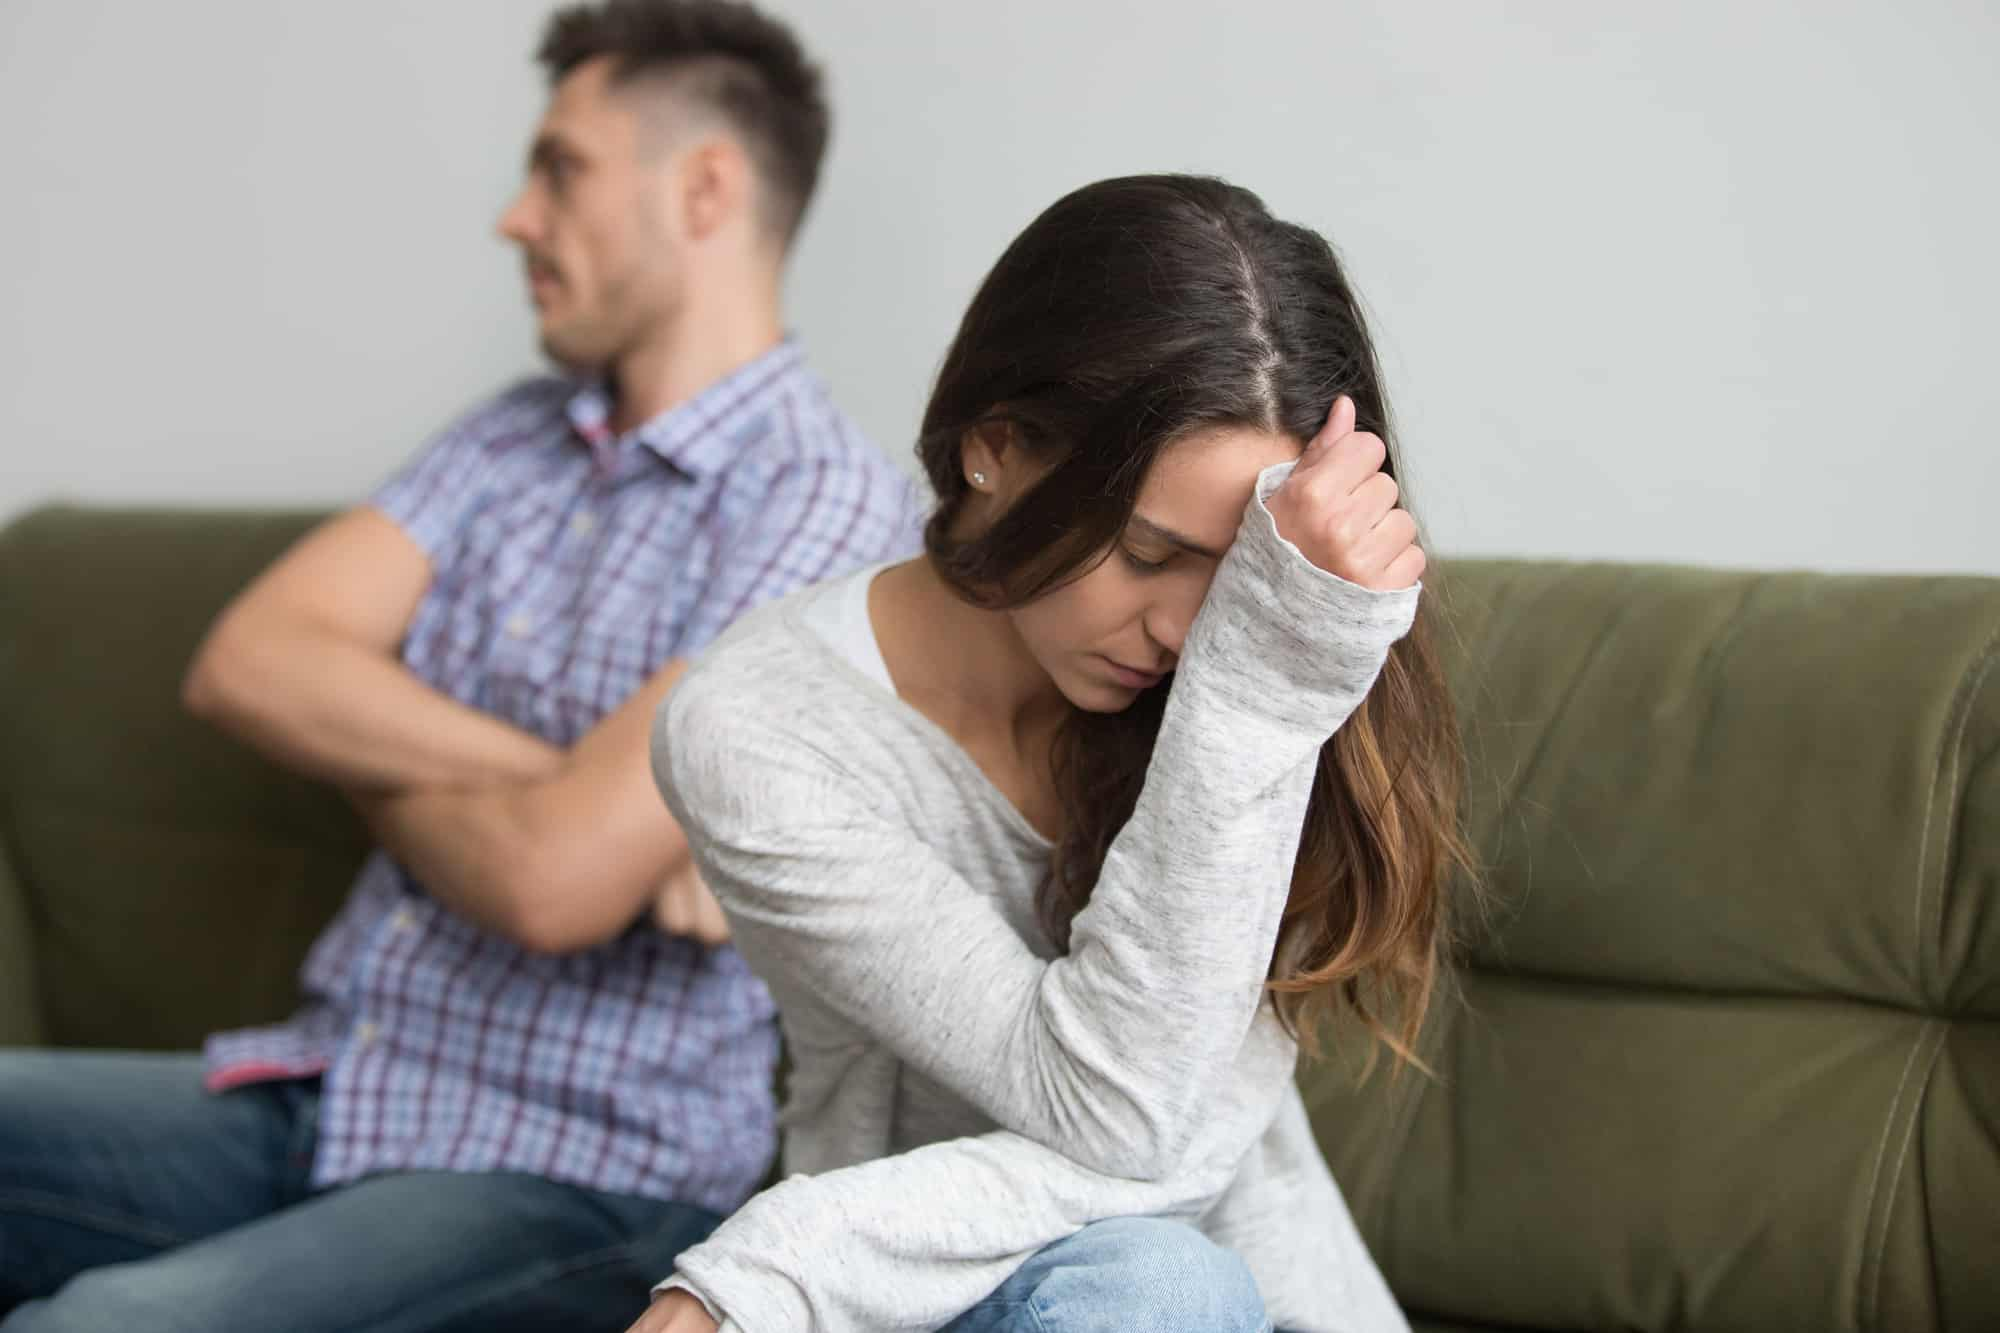 What To Do When My Boyfriend Takes Me For Granted? Should